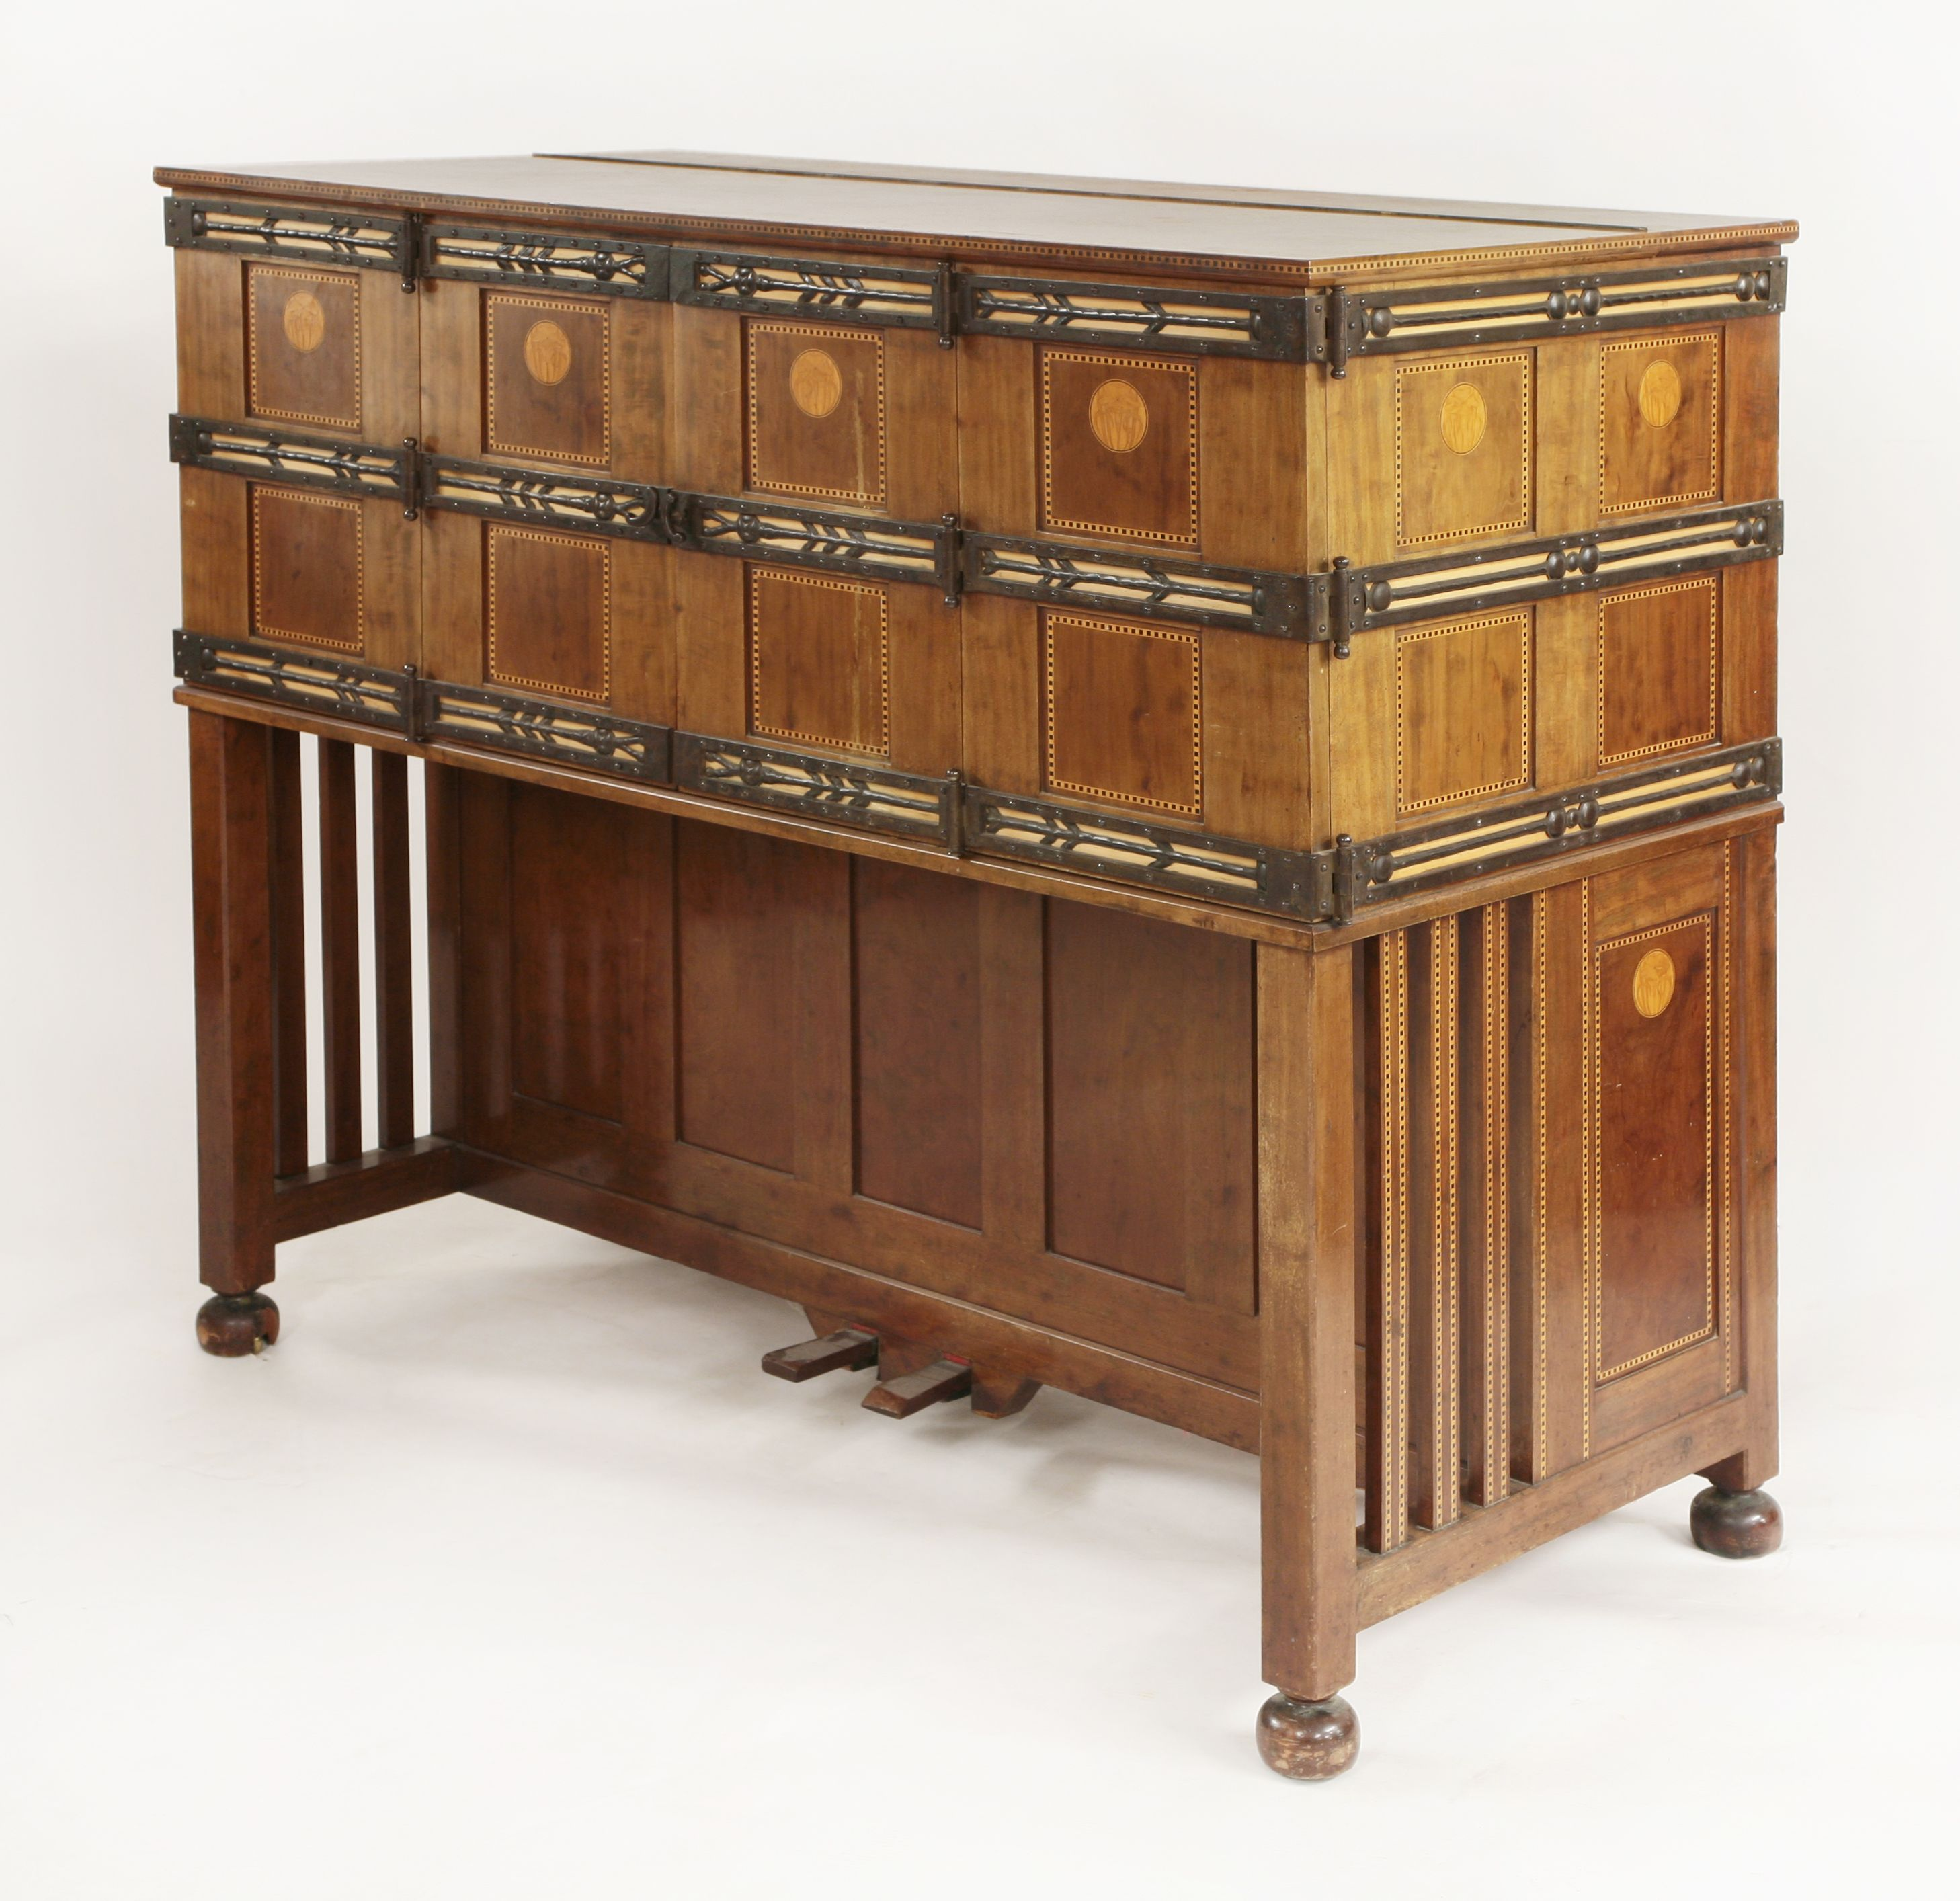 Piano Furniture An Arts And Crafts Piano Designed By Charles Robert Ashbee For